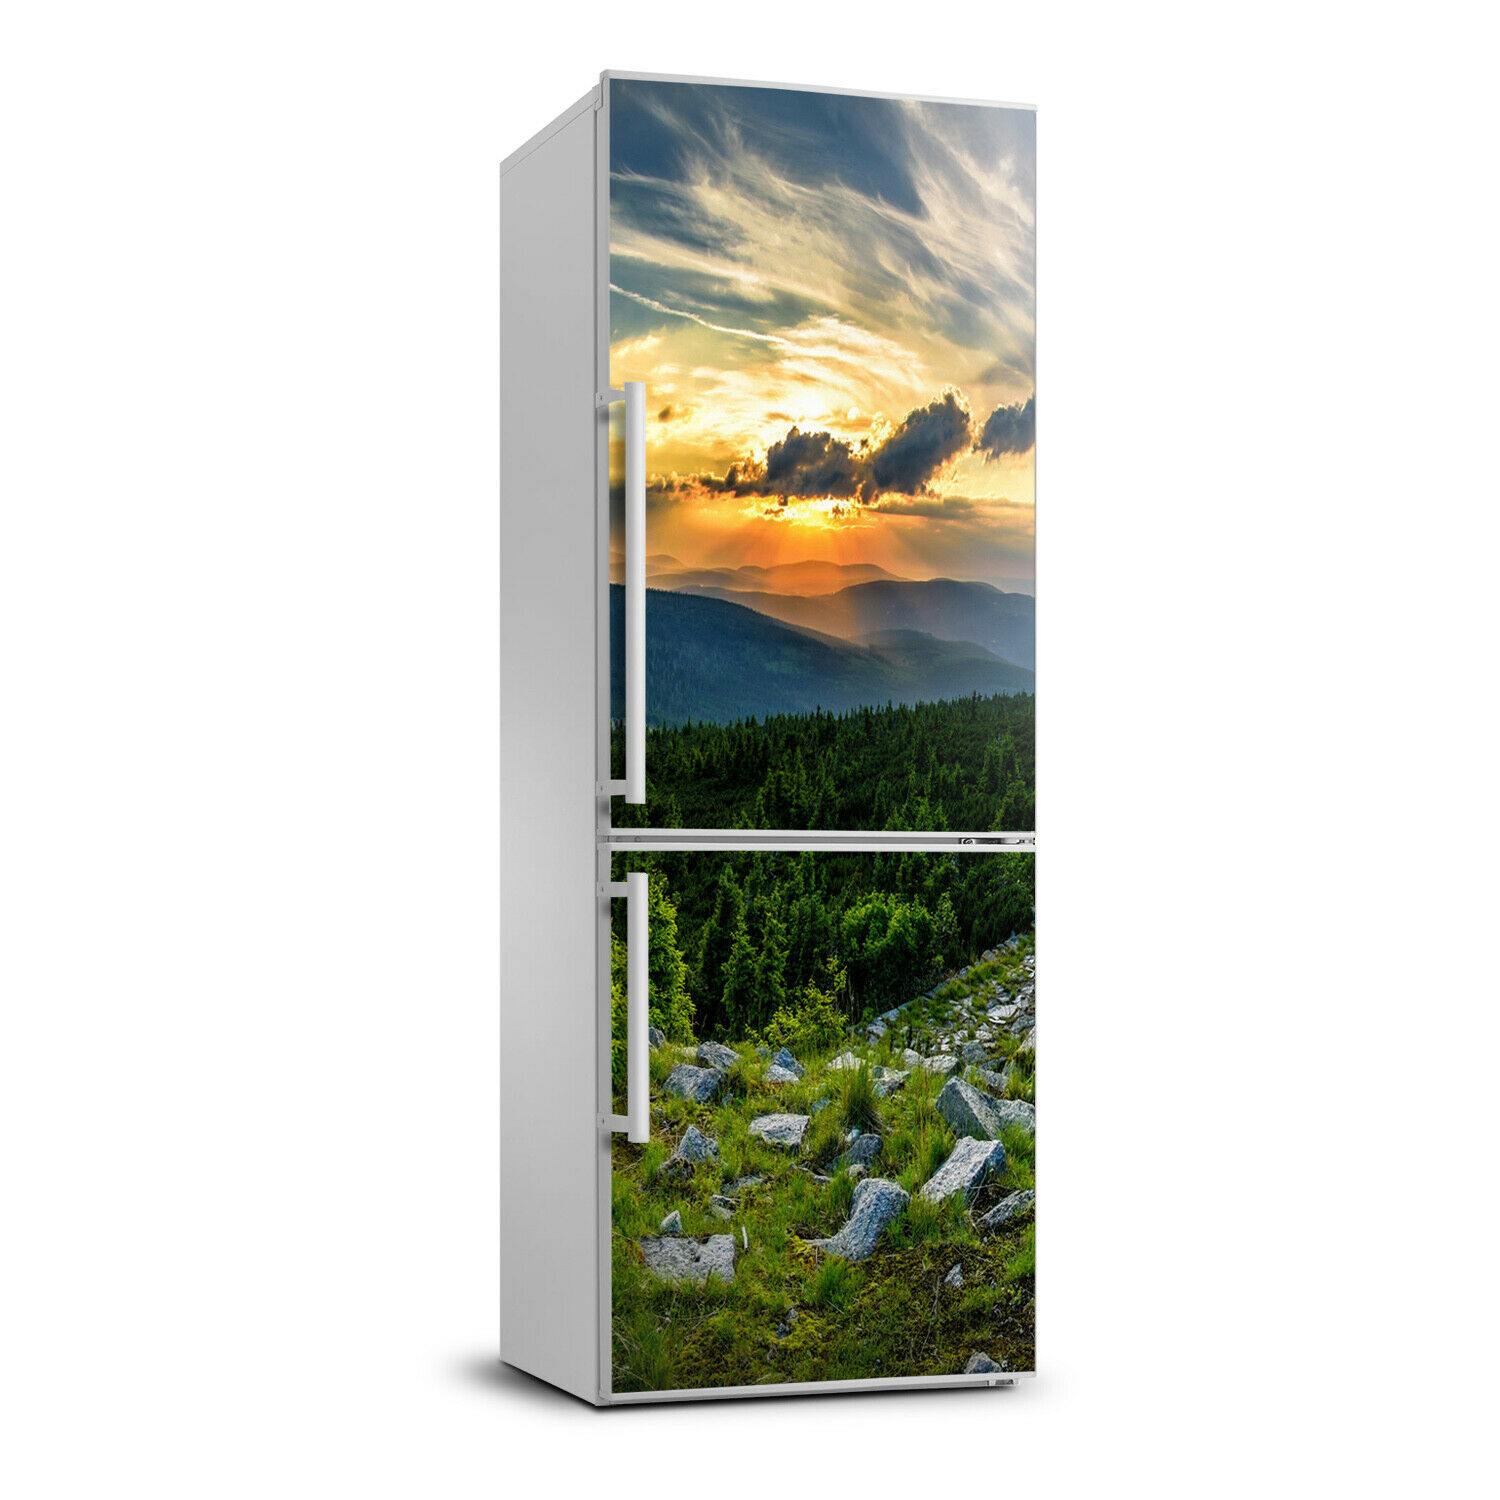 Fridge Self Adhesive Removable Sticker Landscapes Panorama of mountains